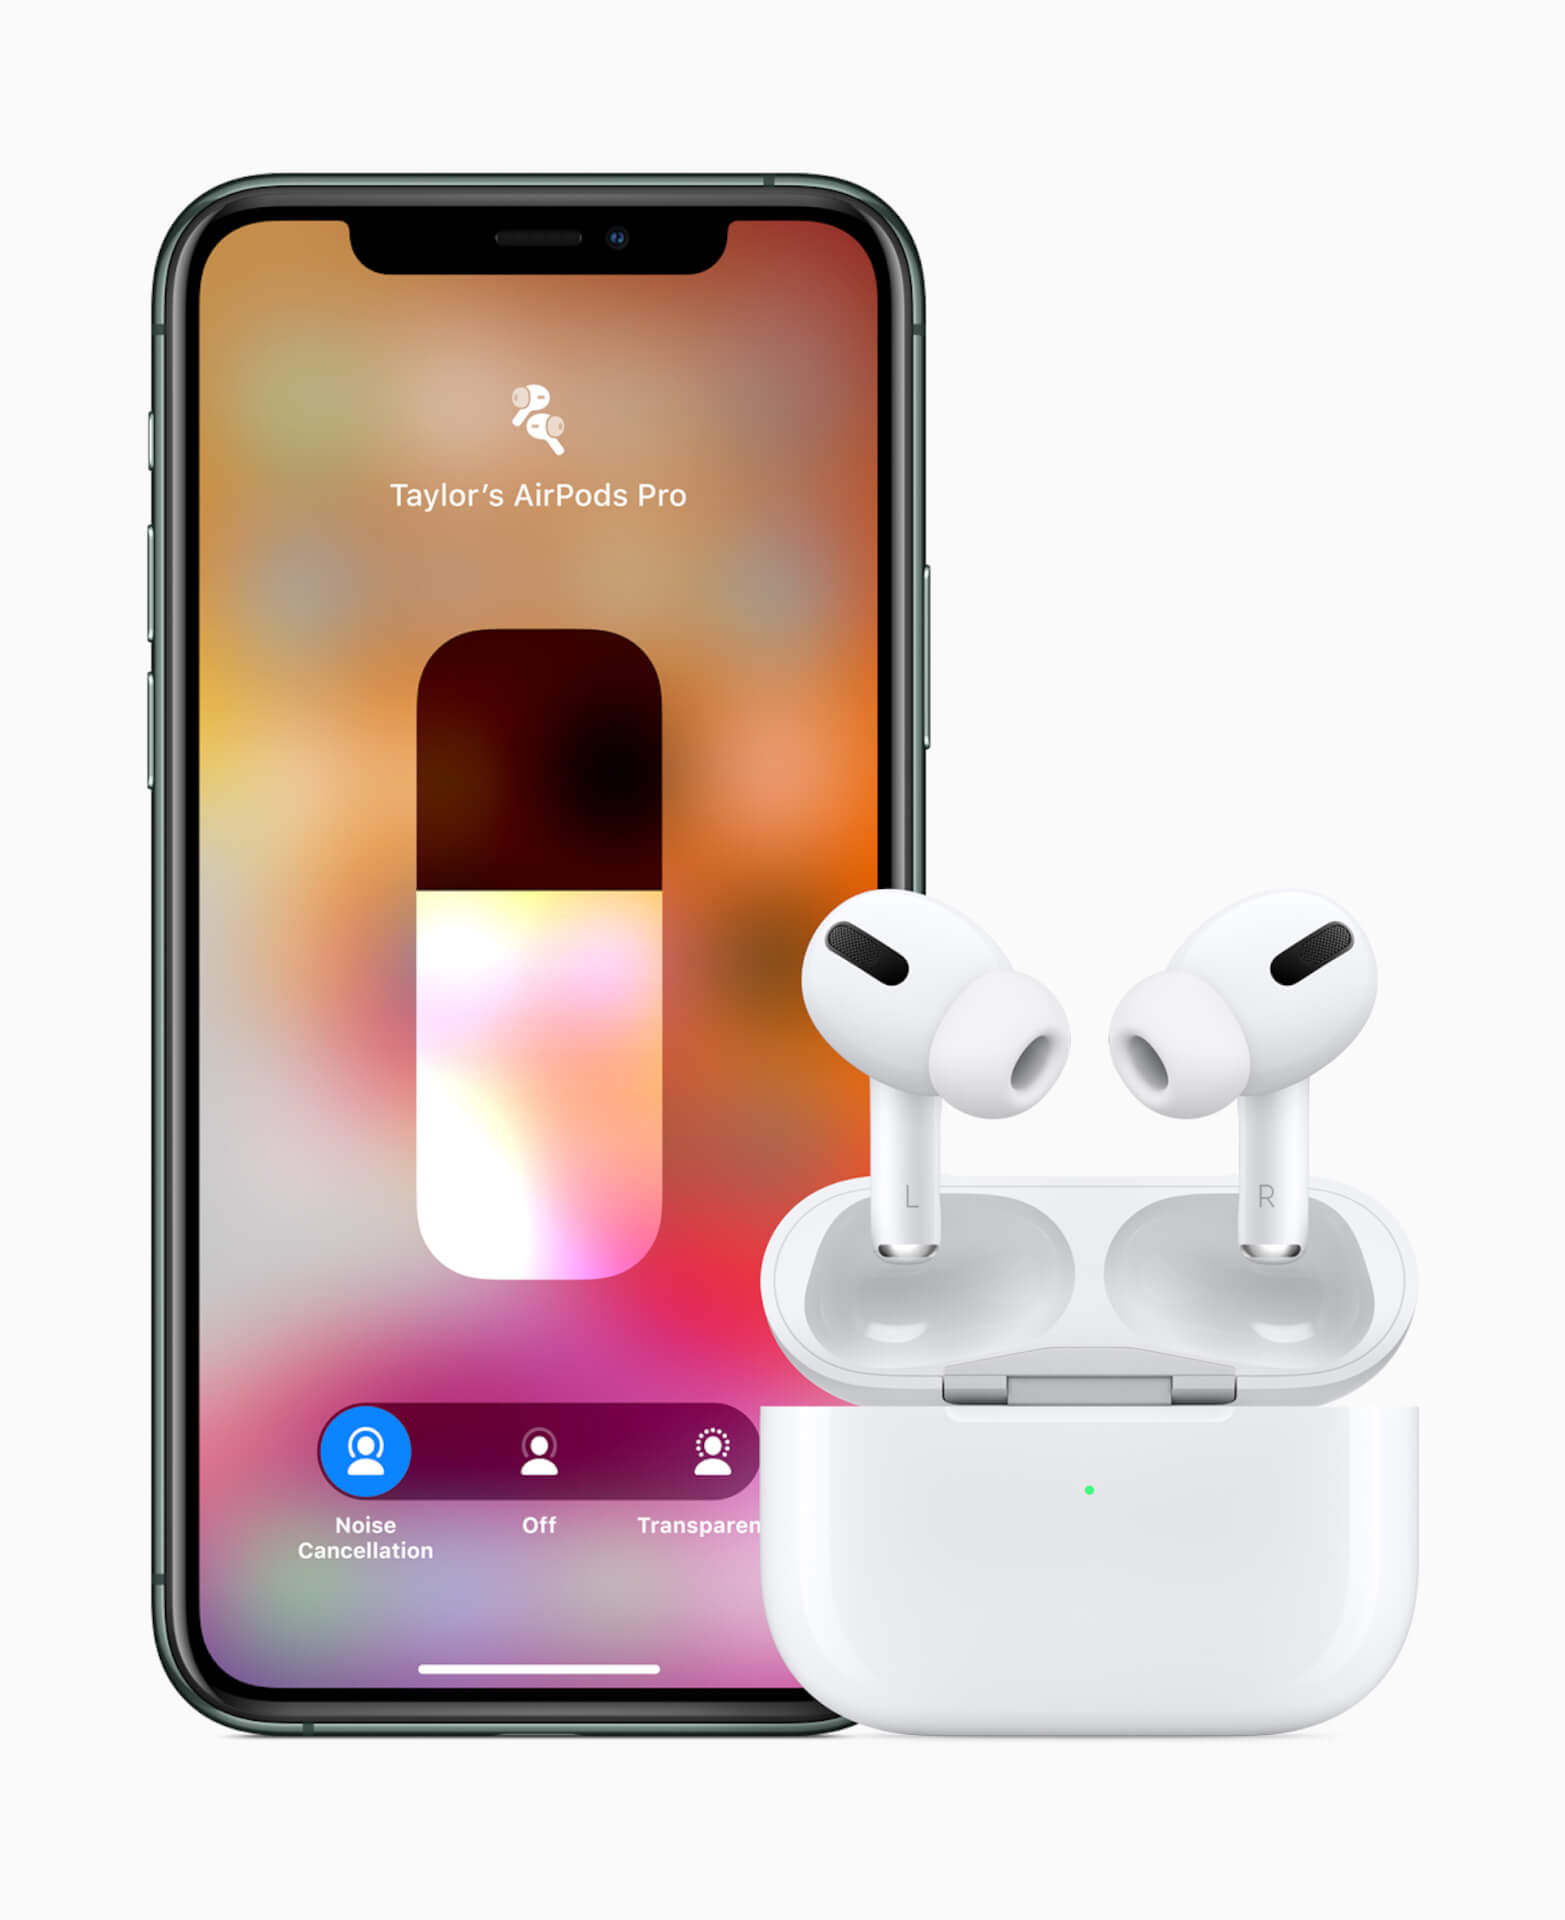 Apple、AirPodsを充電できるiPhoneケースの開発を思案中?申請中の特許が公開 tech210113_airpods_iphone_1